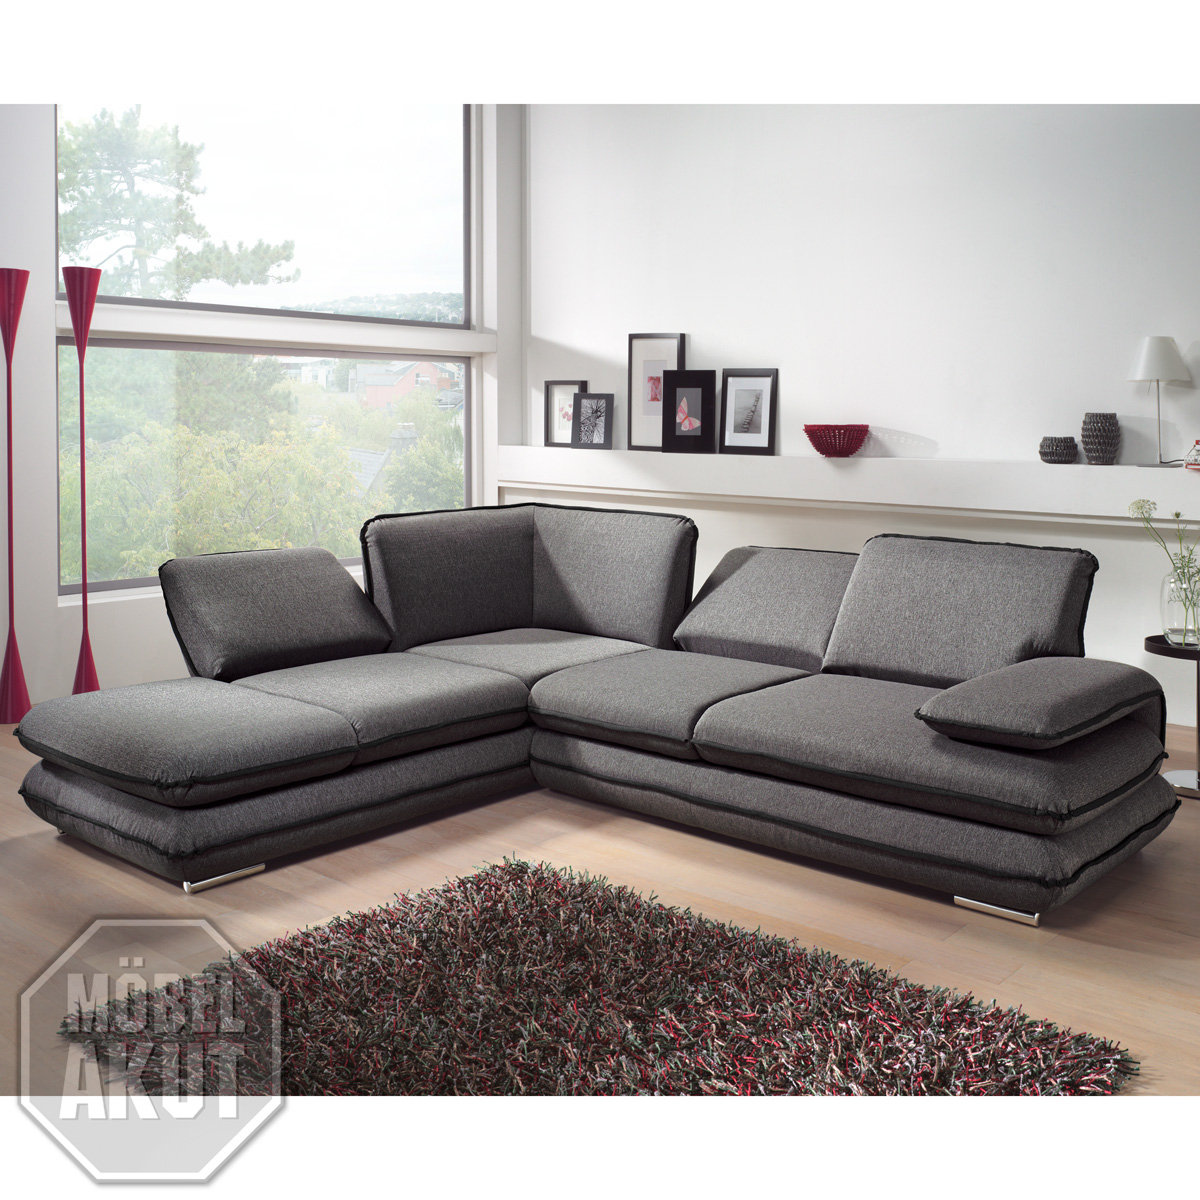 sofa mit relaxfunktion leder sofa sitzer mit relaxfunktion und armlehnen aus sofa set parma. Black Bedroom Furniture Sets. Home Design Ideas